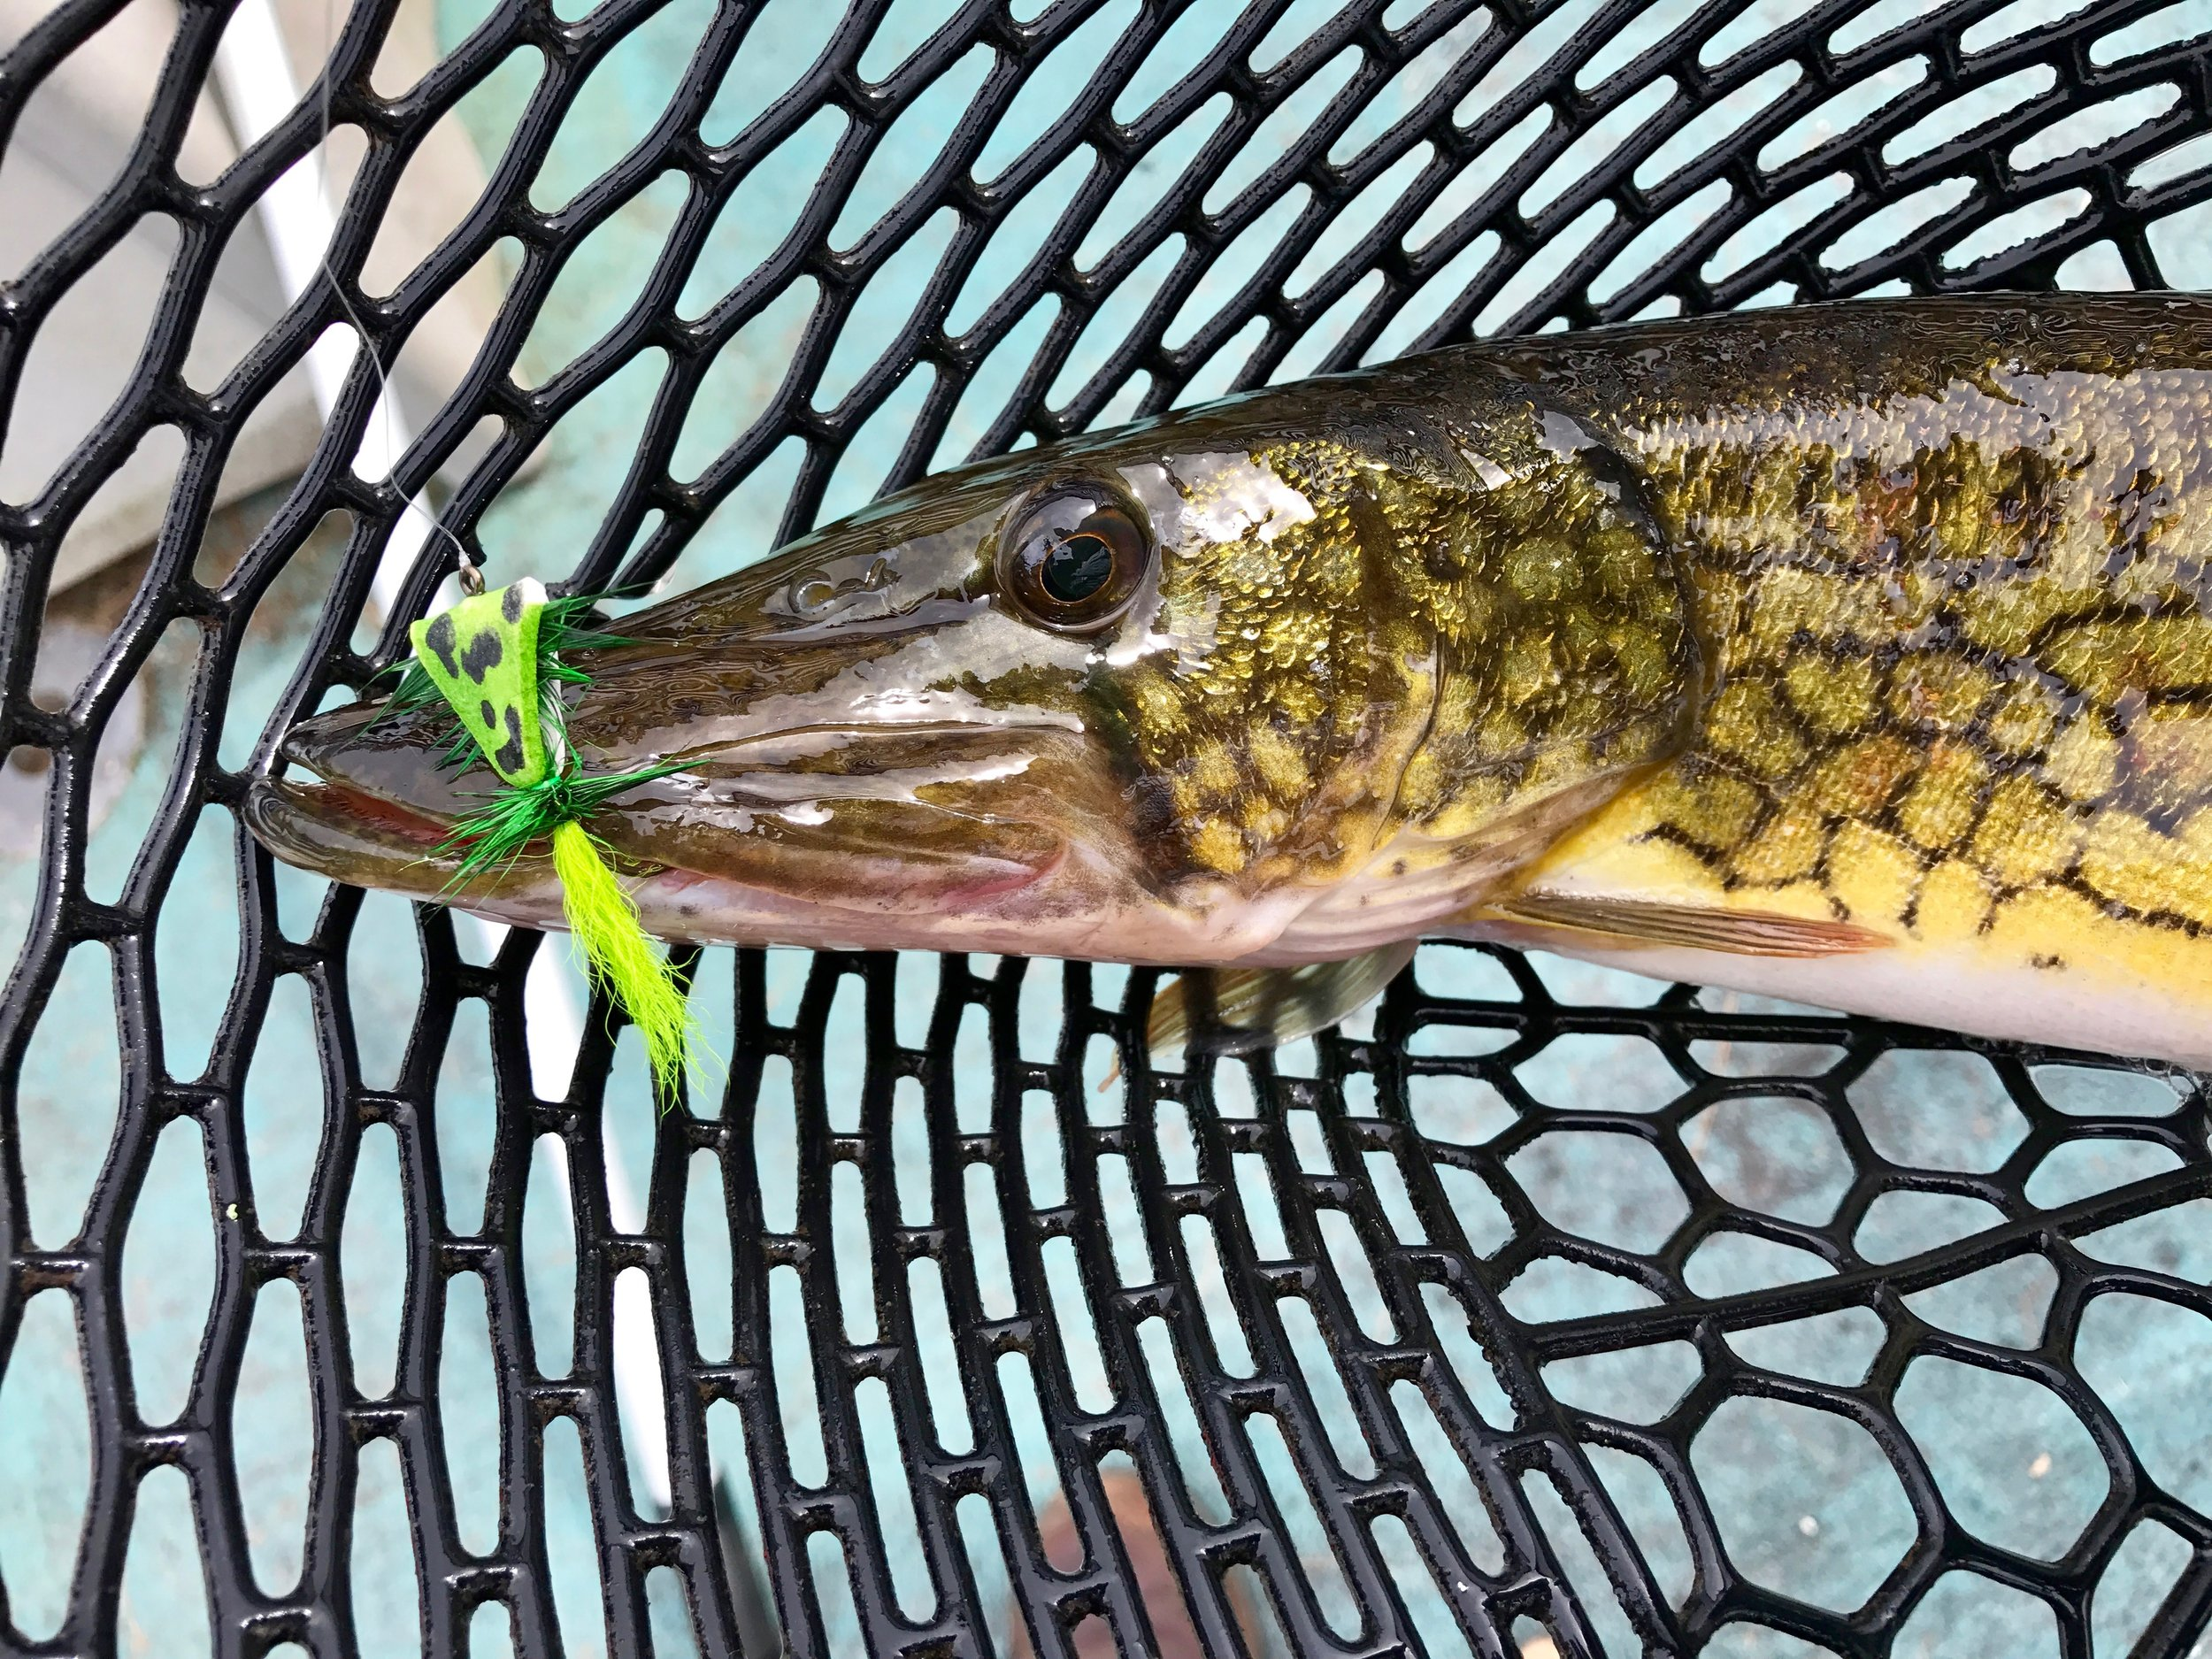 Top water flies are my favorite with these fish!